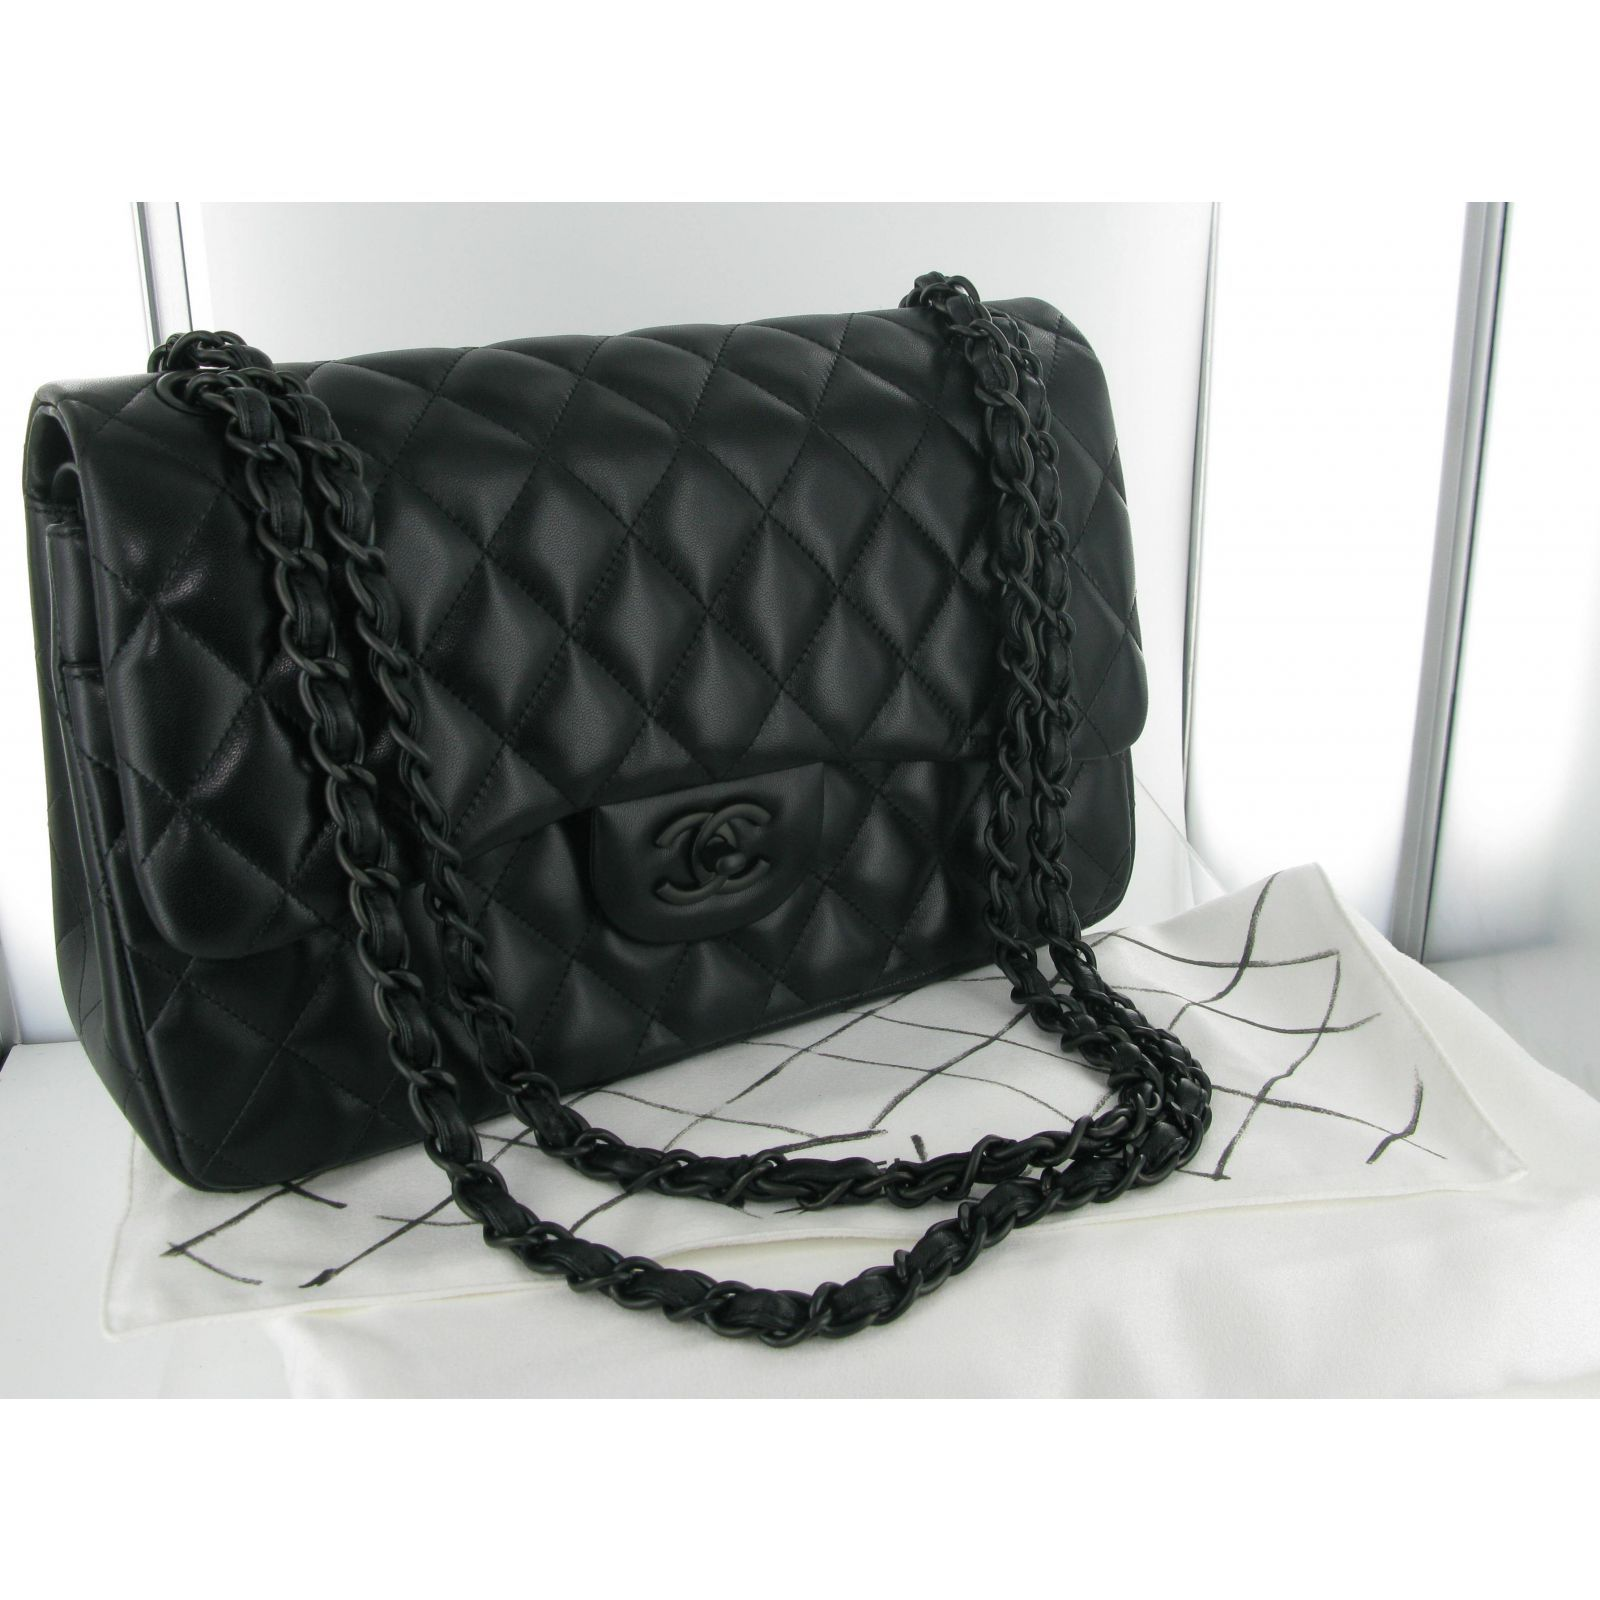 Ultamite Chanel Bag   Bags, Classic and Chanel bags